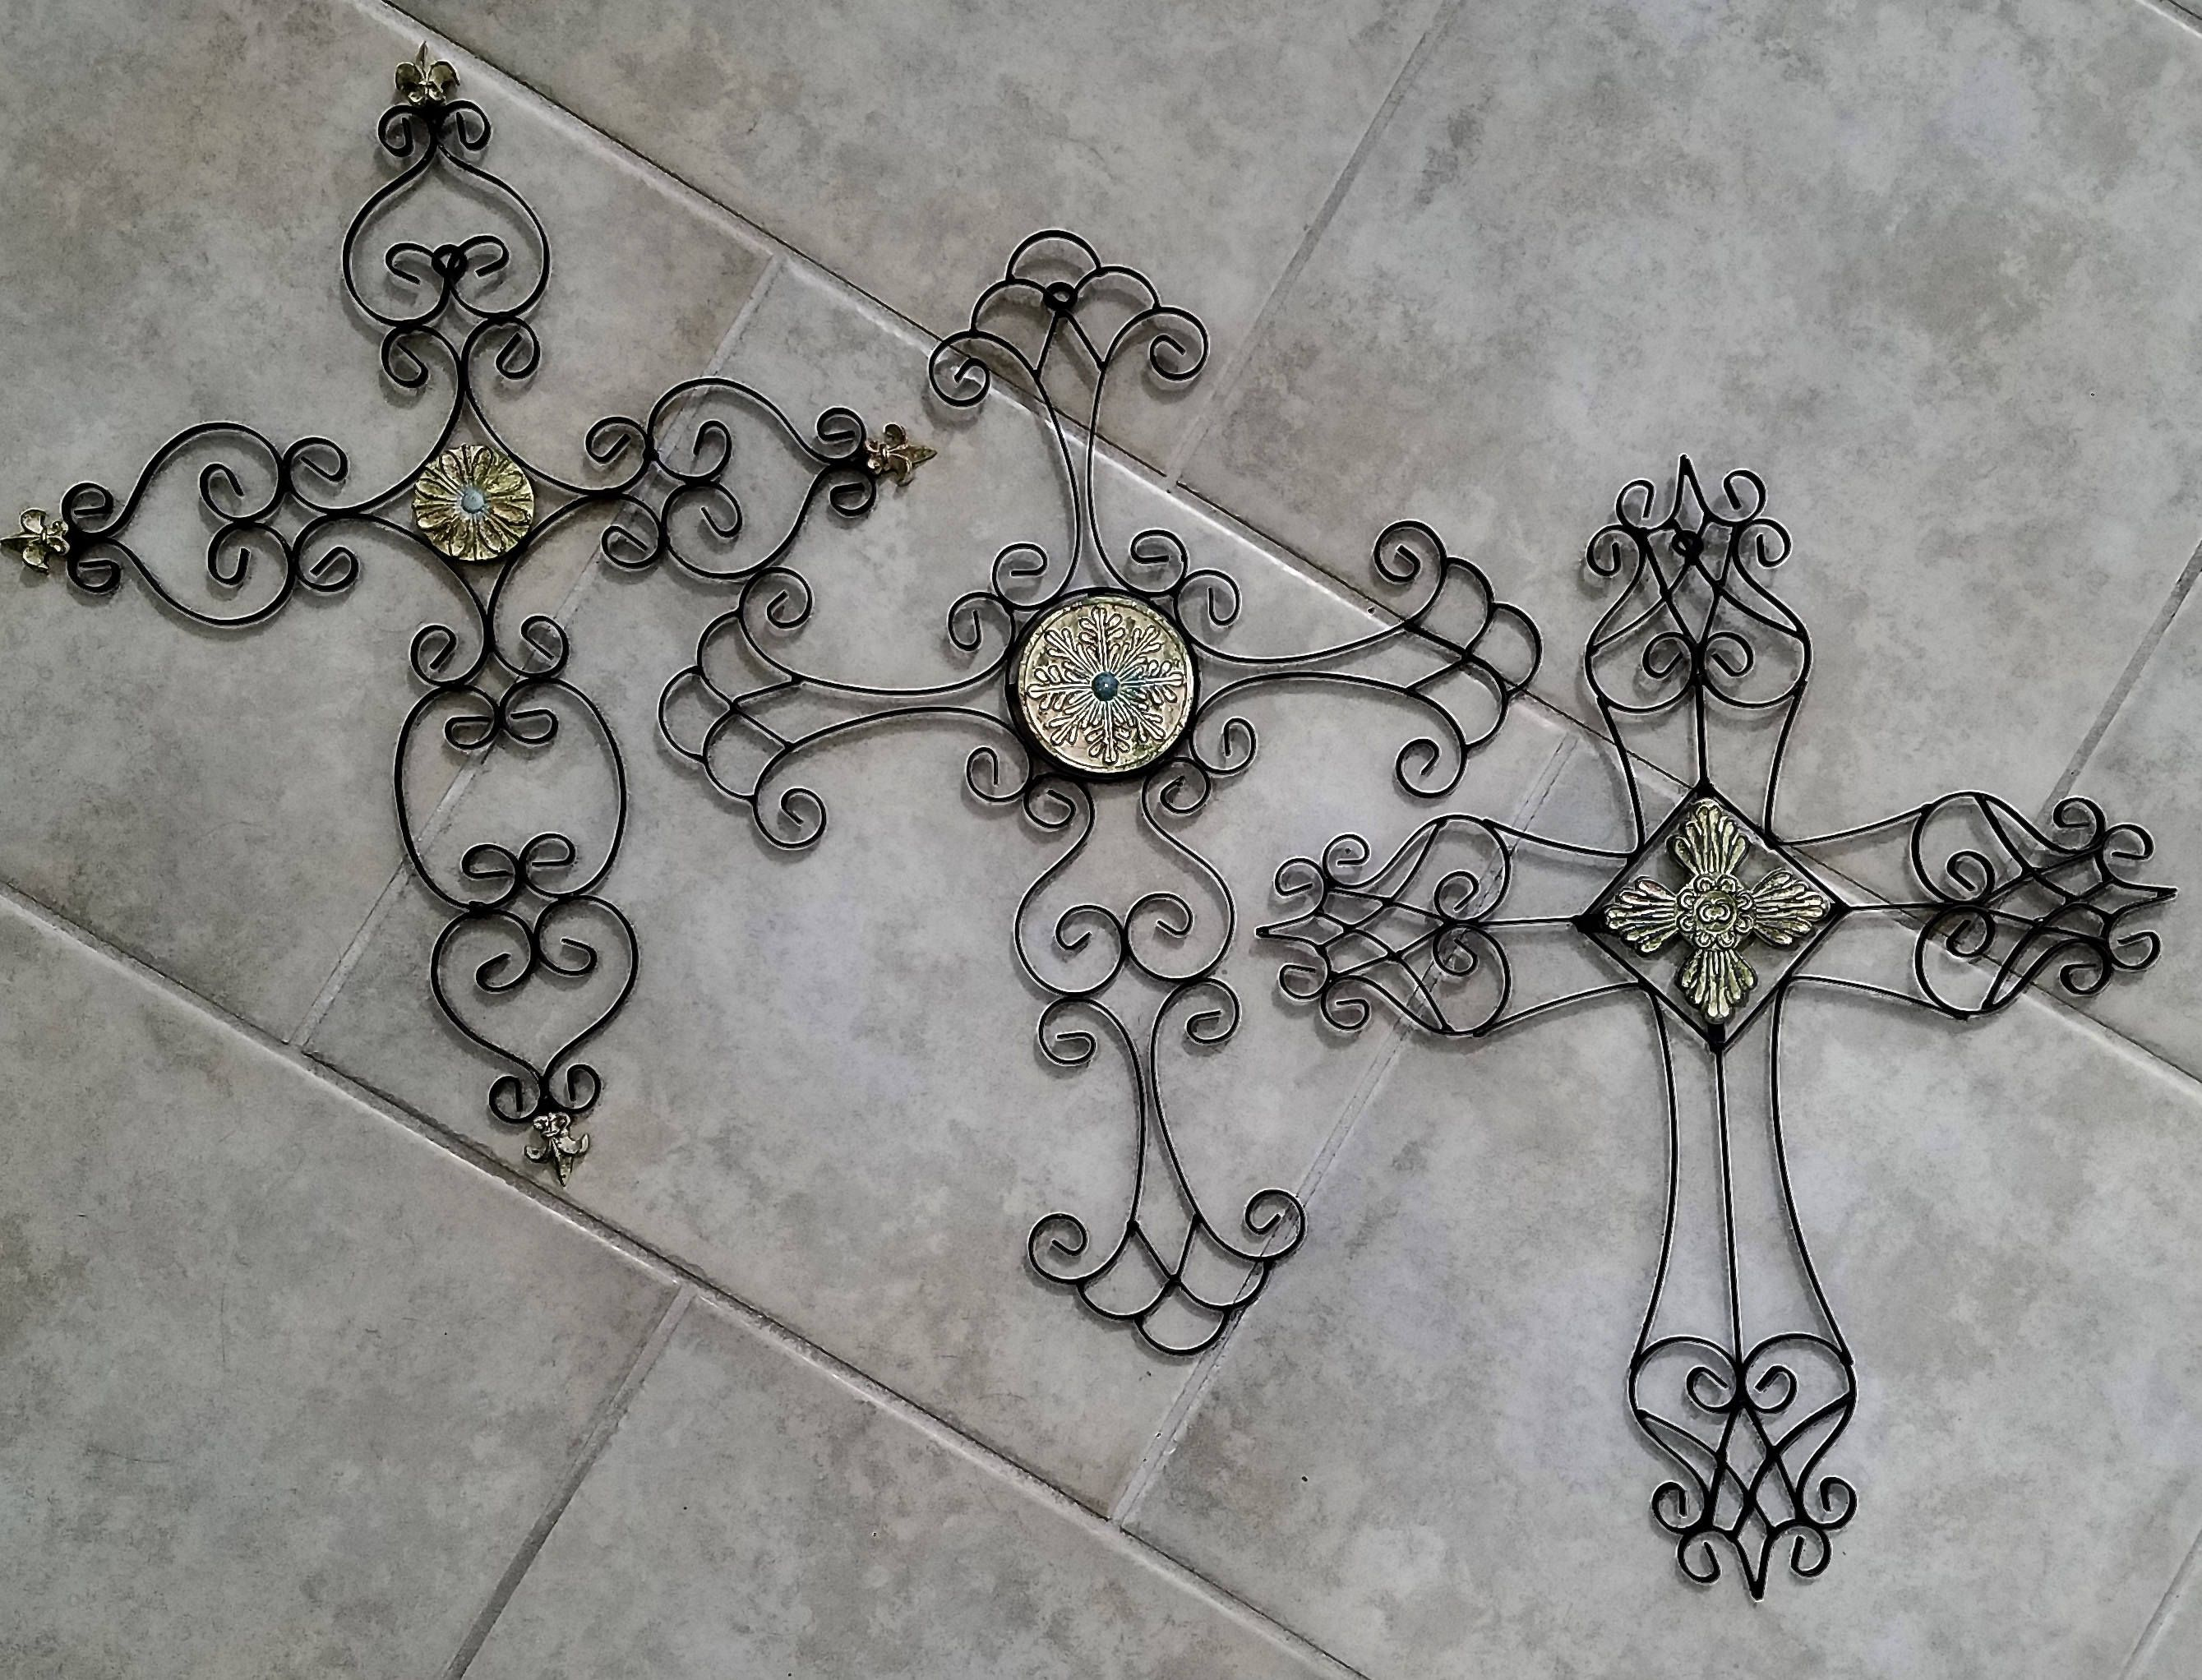 Ornate Celtic Crosses Home Decor 3 Large Metal Wall Crosses Medieval Renaissance Indoor Or